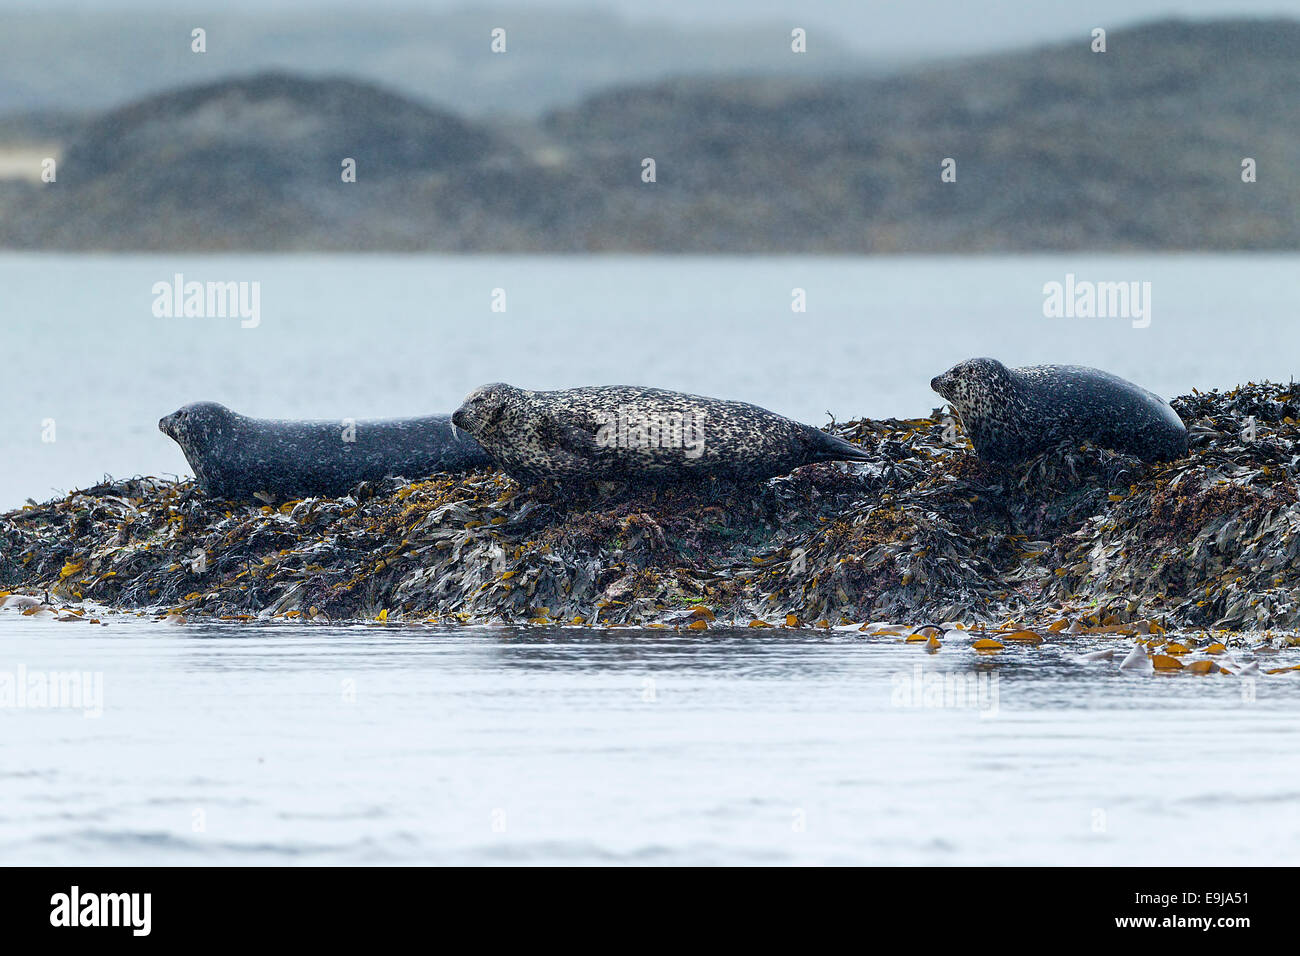 A group of Common seal (Phoca vitulina) hauled-out to rest on seaweed covered rocks in the rain, Isle of Mull, Scotland - Stock Image